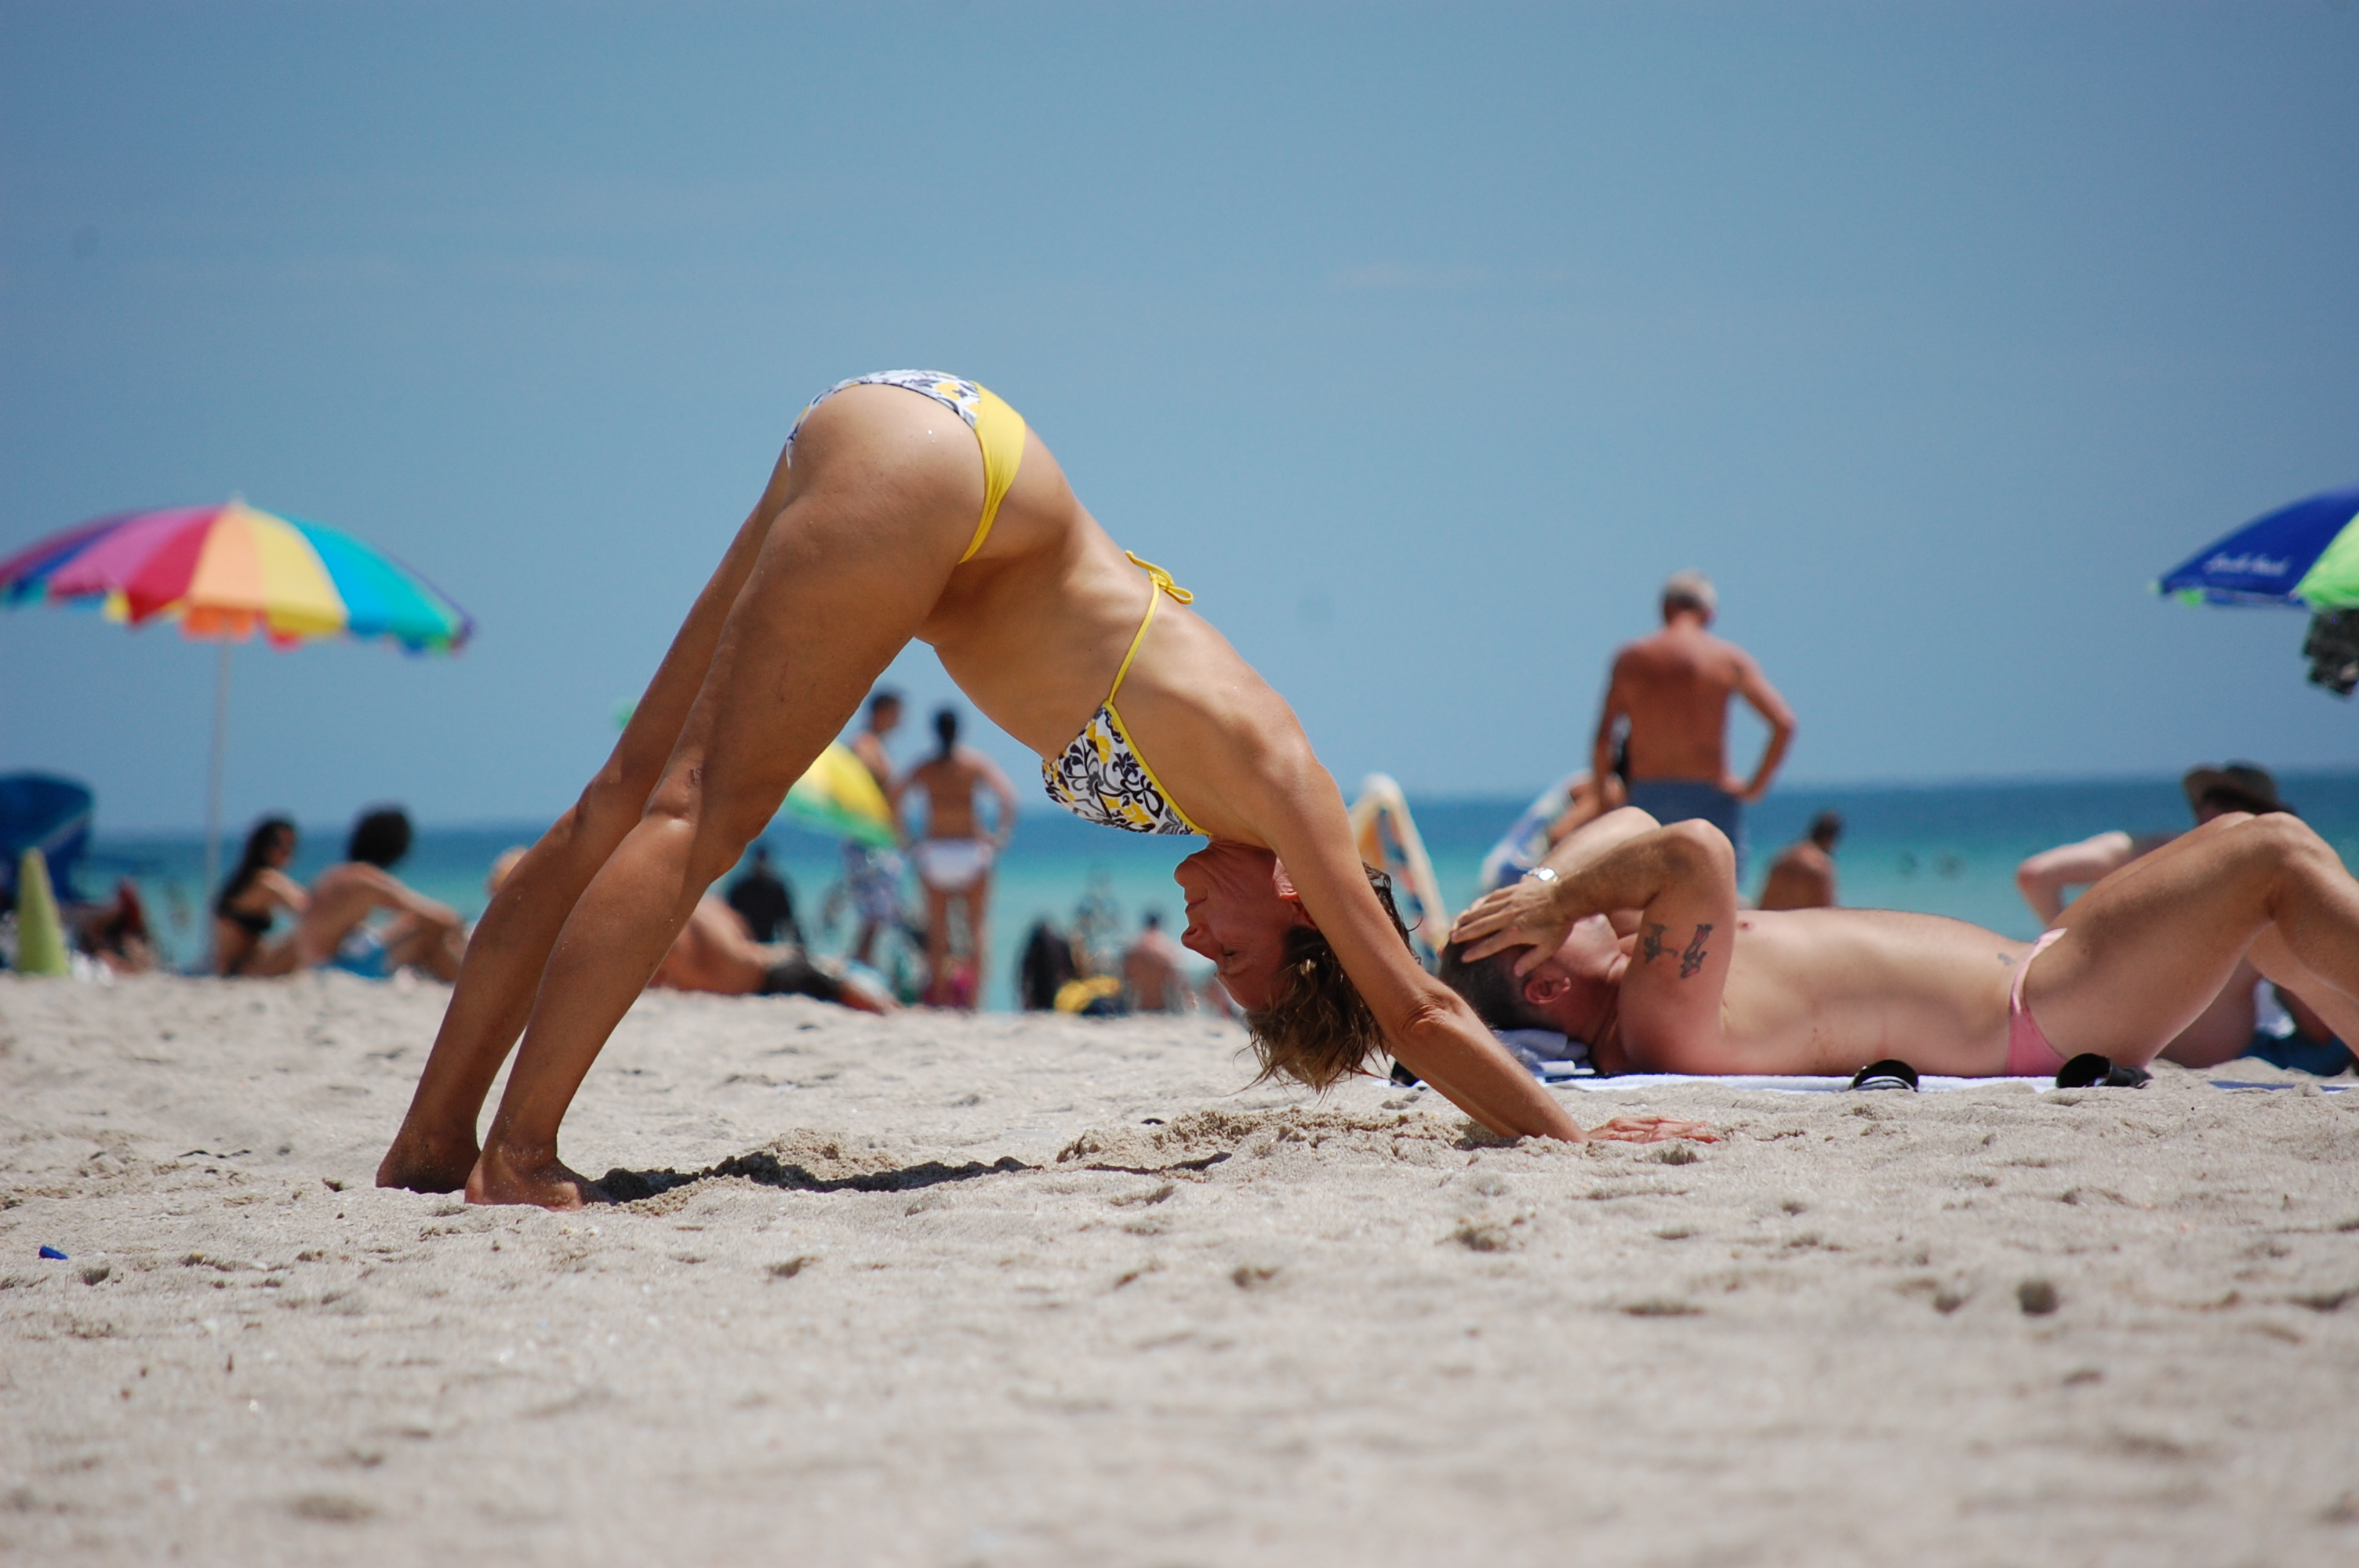 Yoga on The Beach South Beach South Beach May Well be The